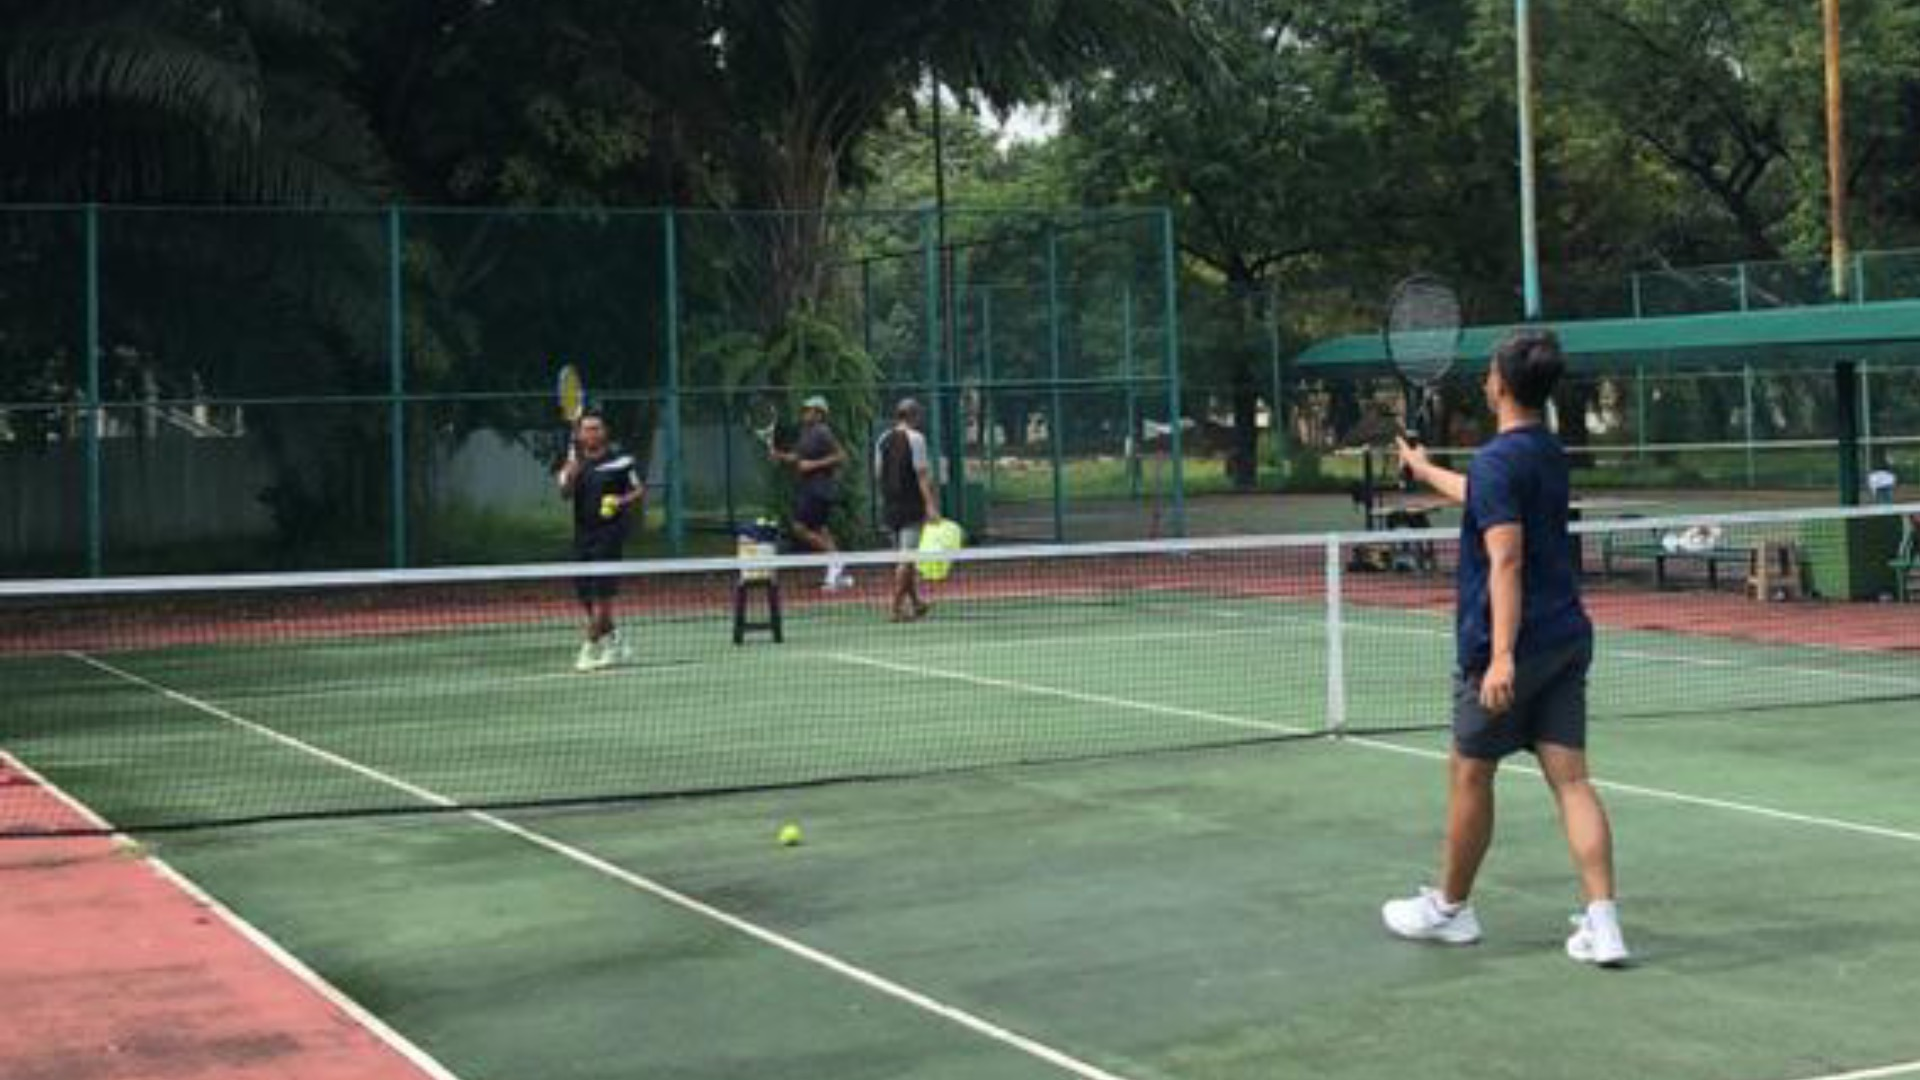 Tenis For All Levels at Tanjung Mas Raya Tenis Court